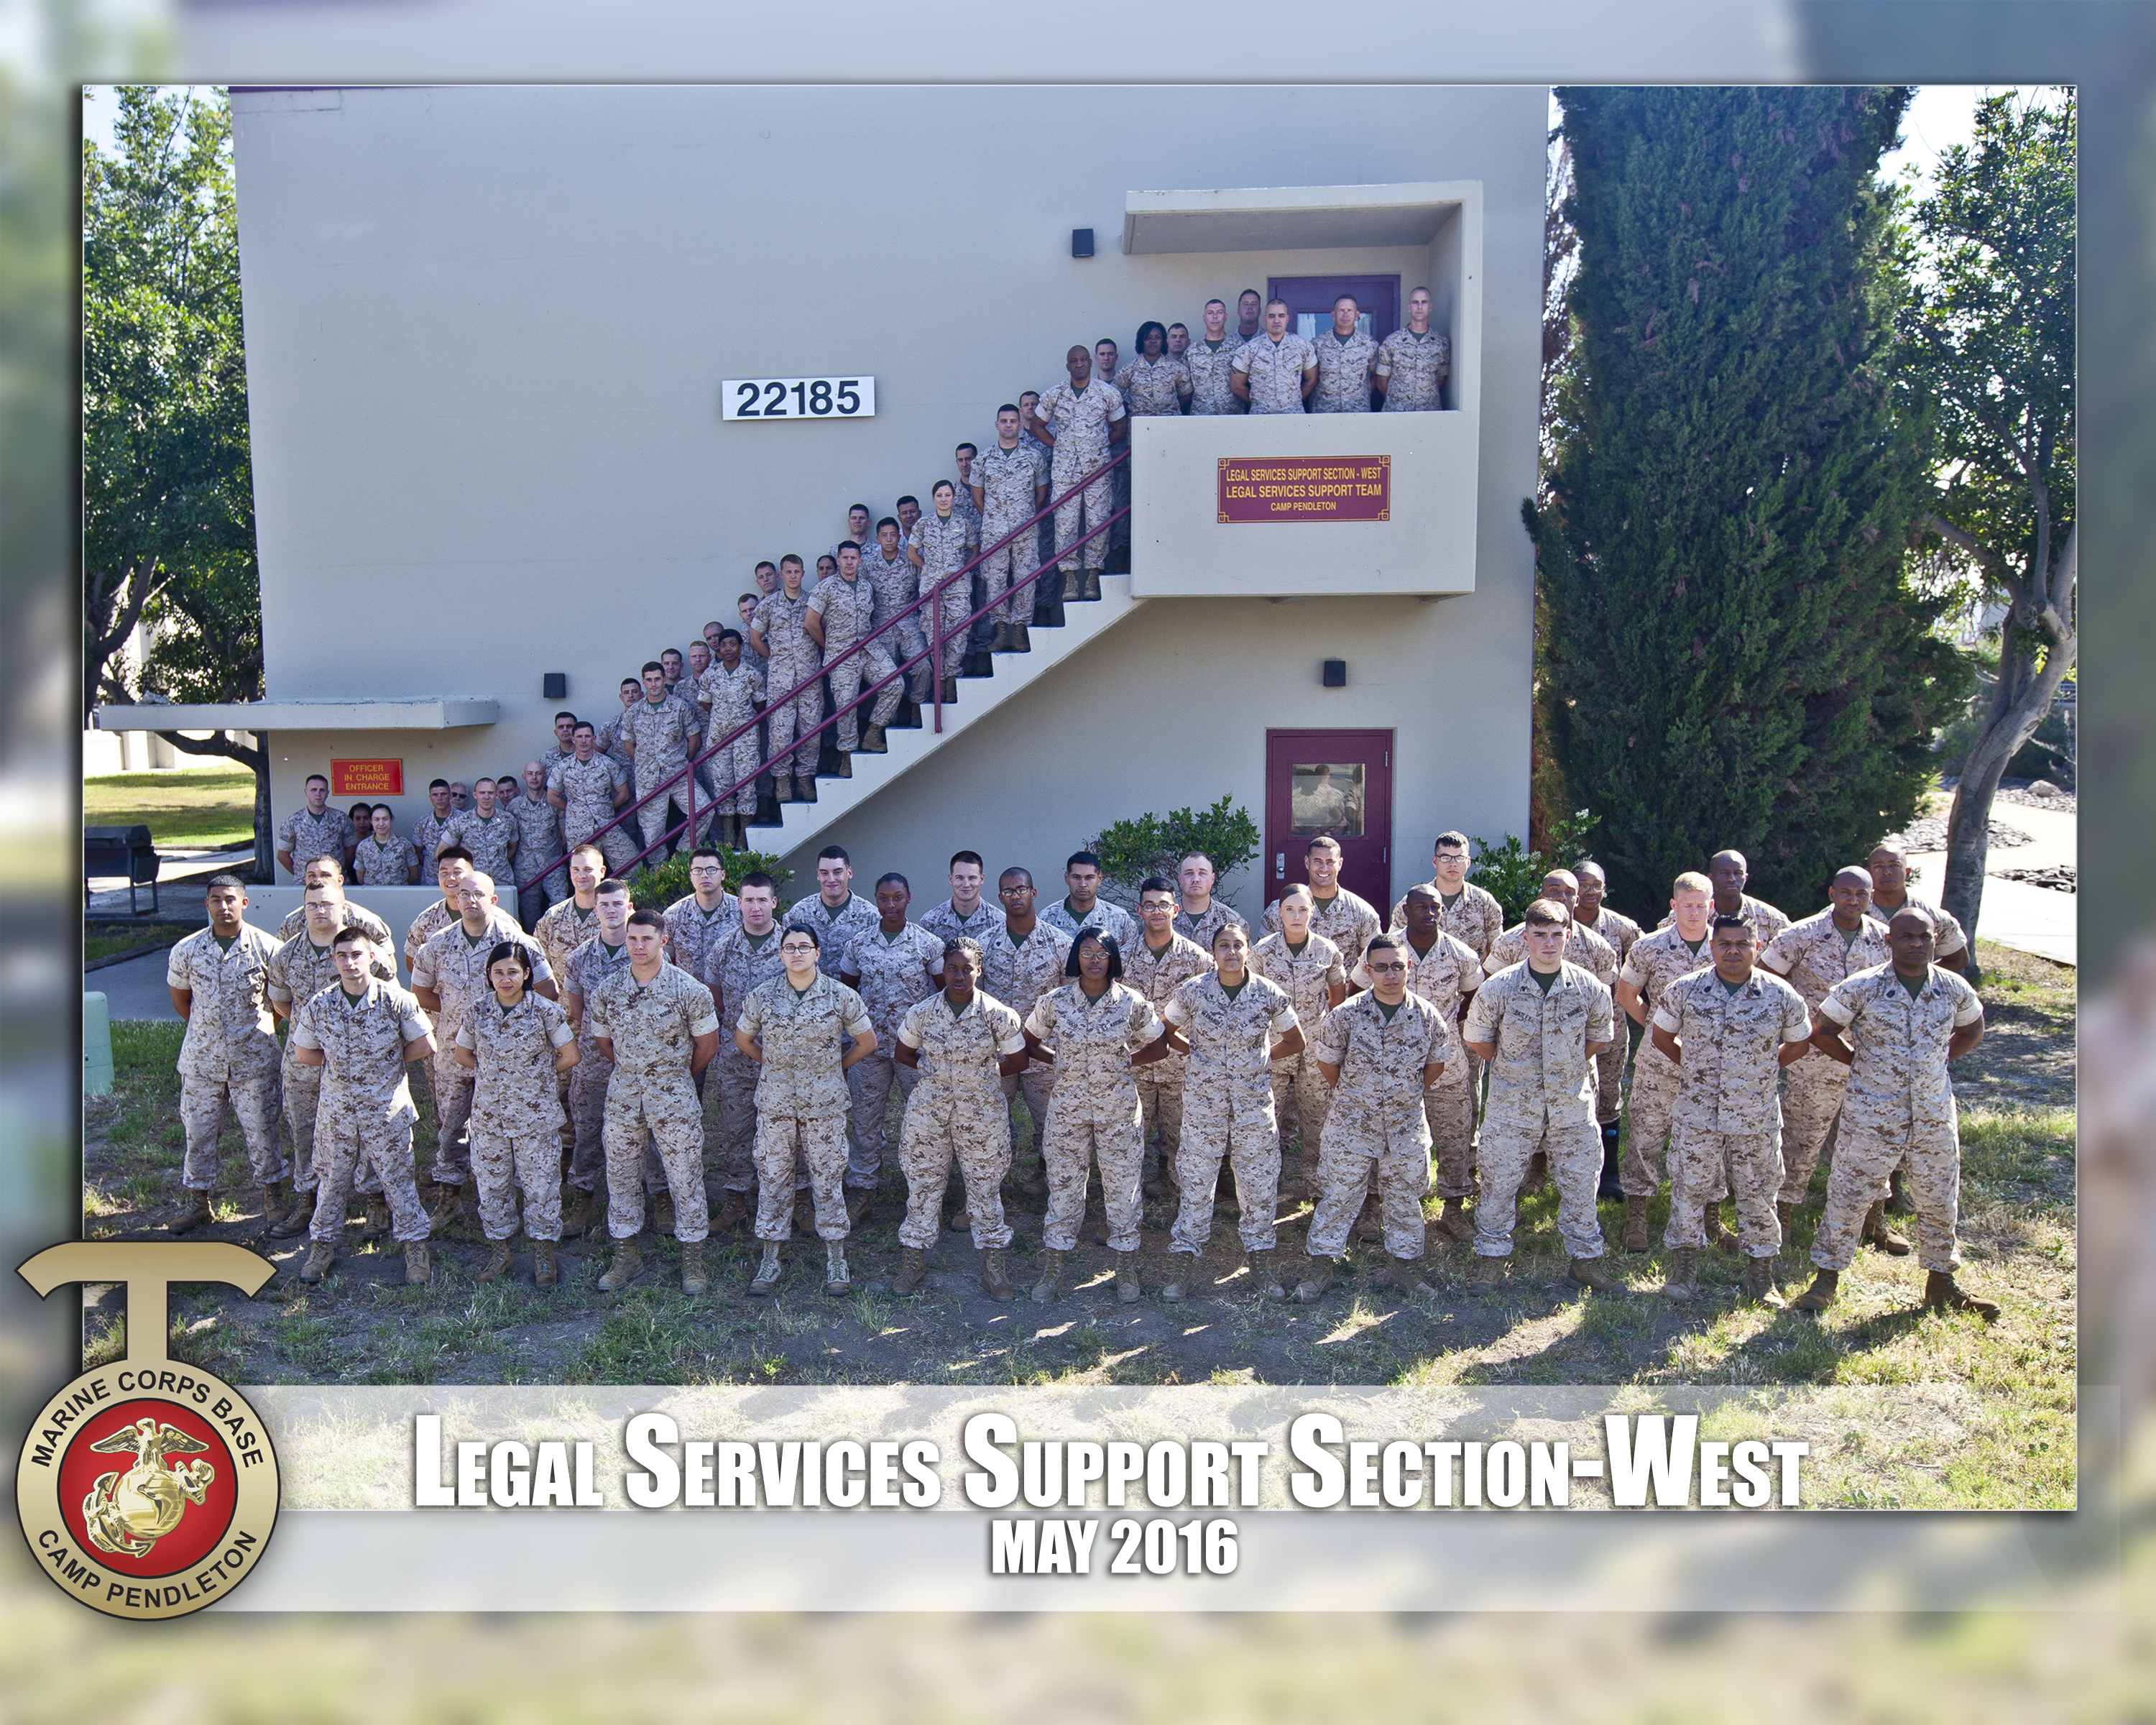 marine corps base camp pendleton staff agencies legal services